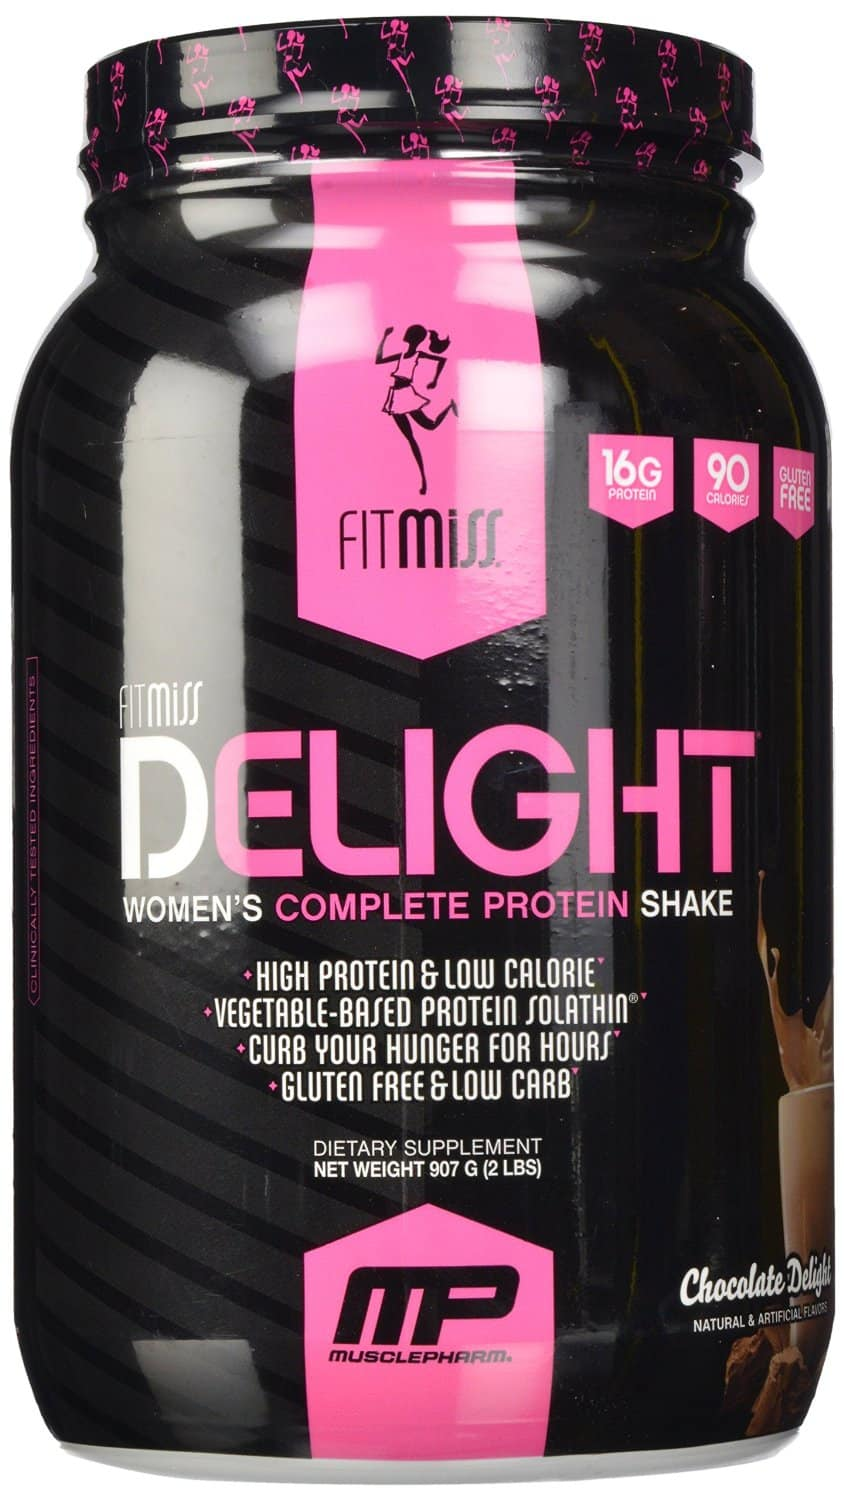 Fitmiss Delight Nutritional Shake